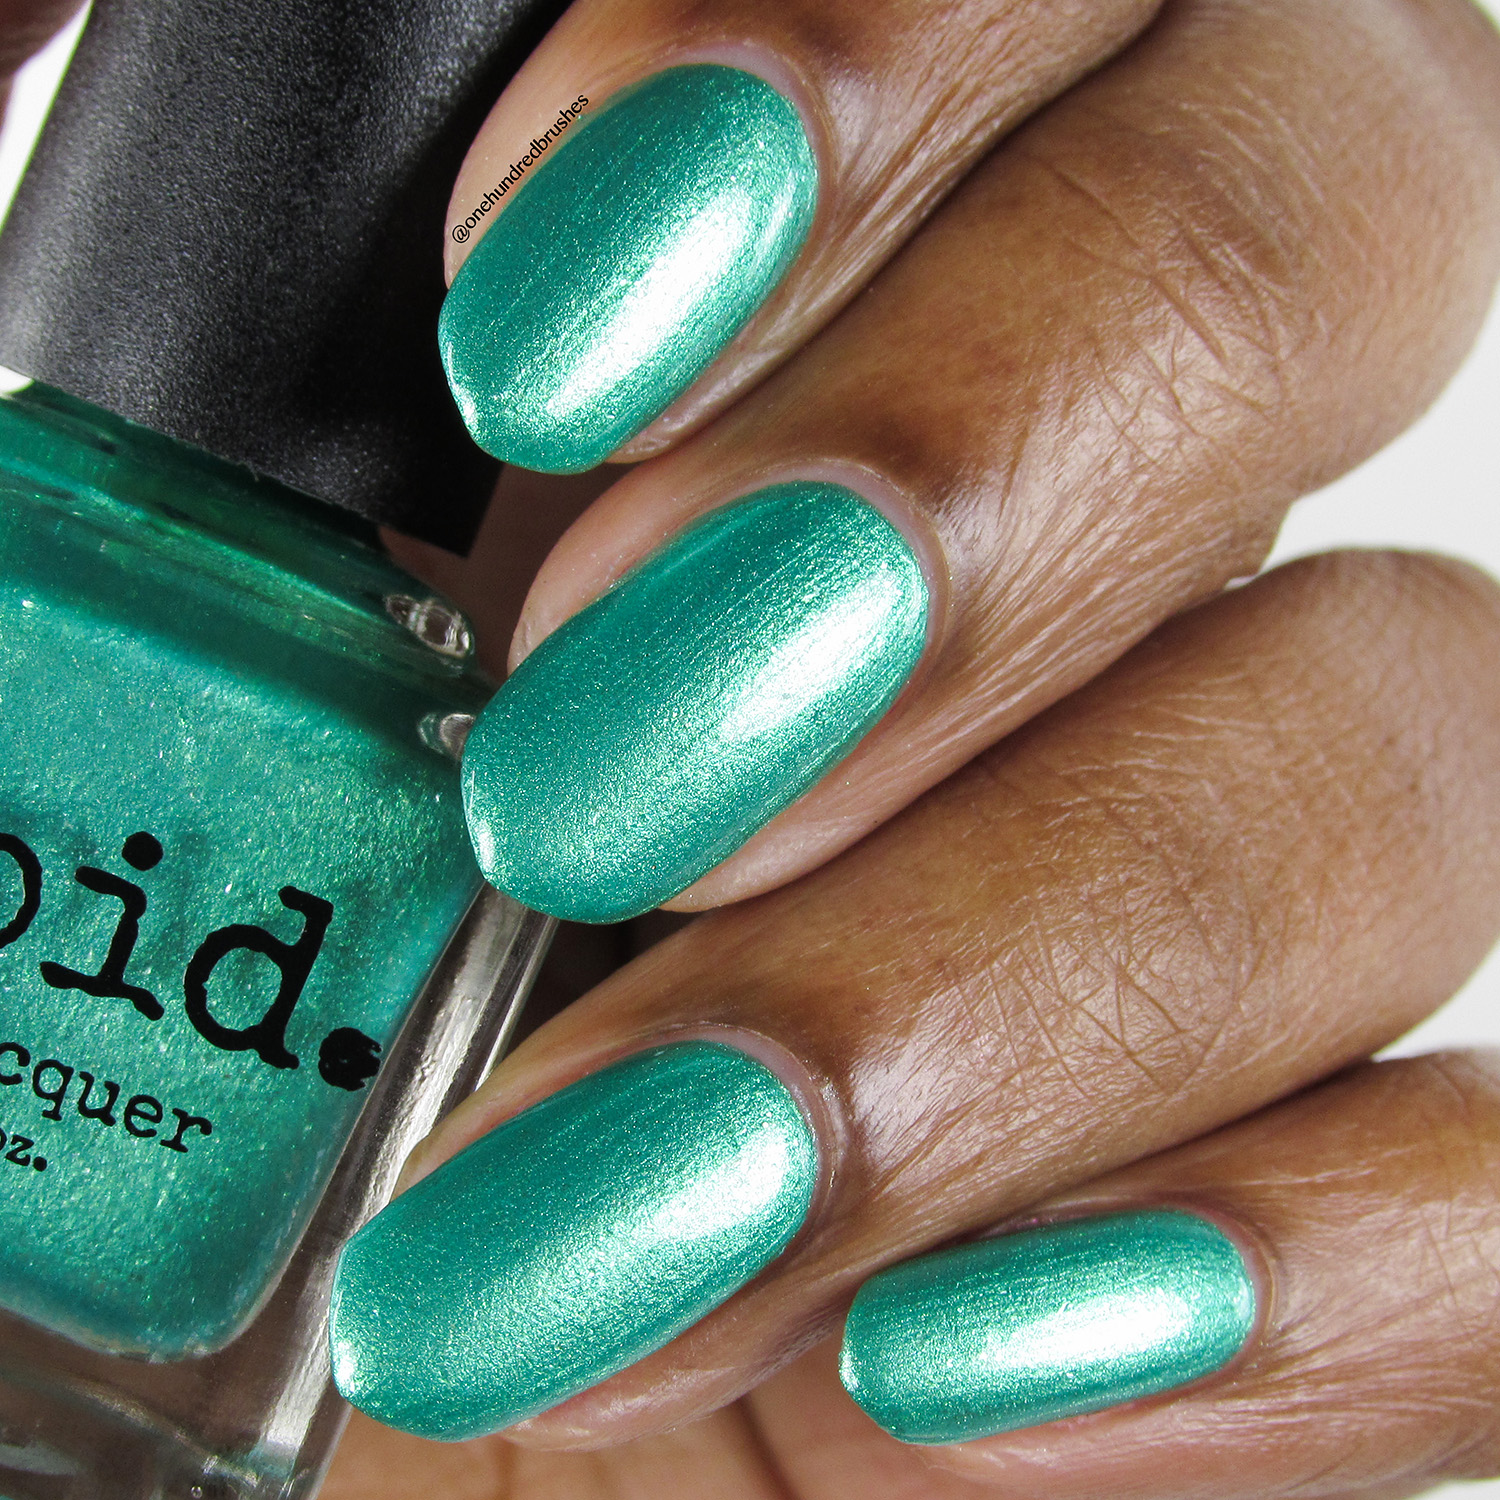 Aquatica - bottle - Vapid Lacquer - April 2018 - Spring release - green - aquamarine - green shimmer